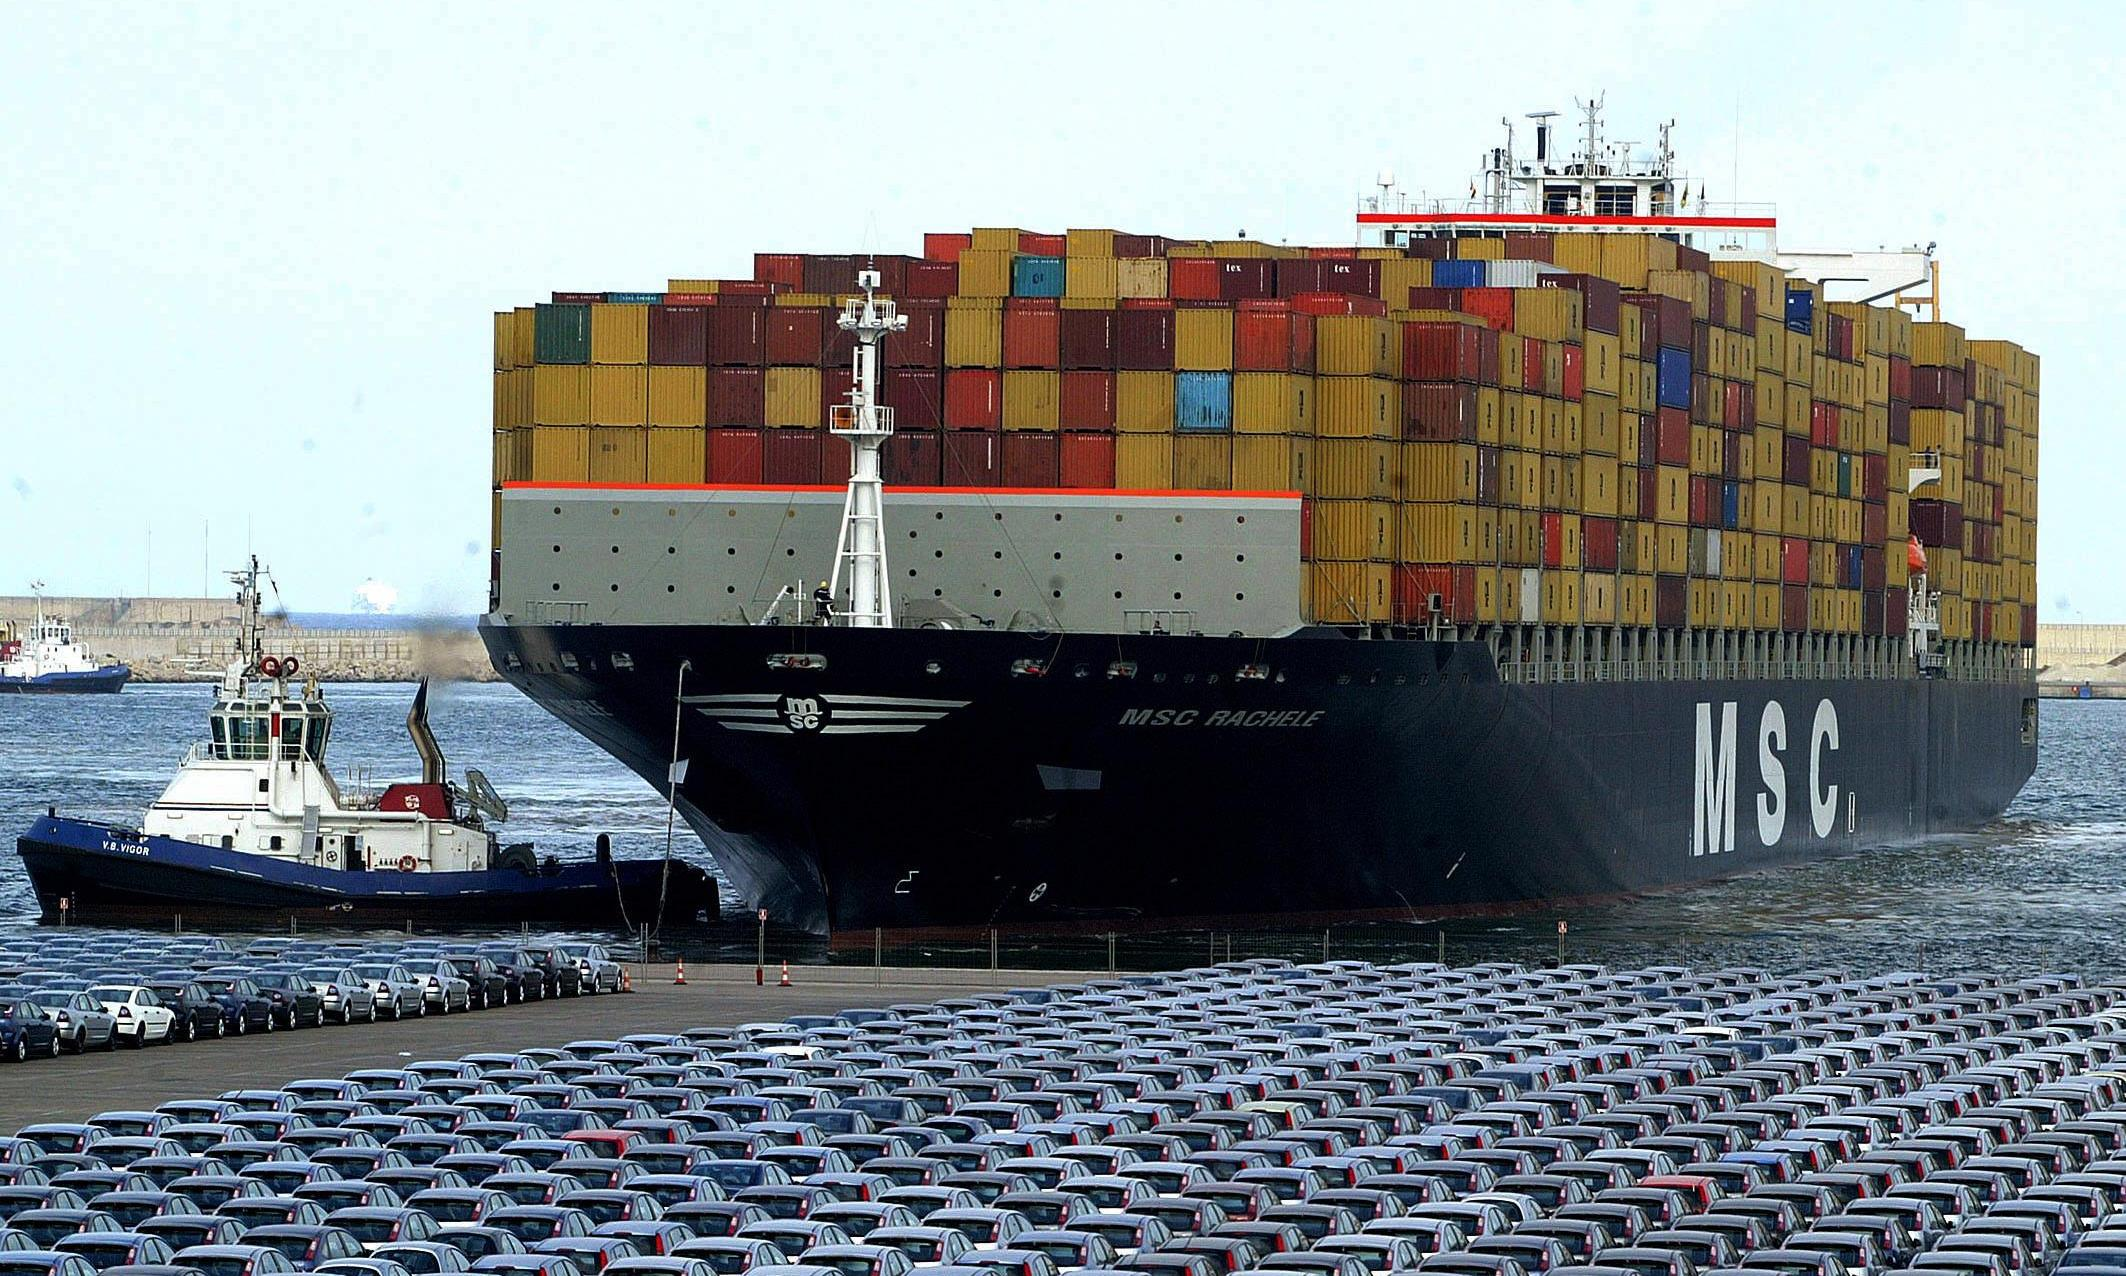 European shipping emissions undermining international climate targets